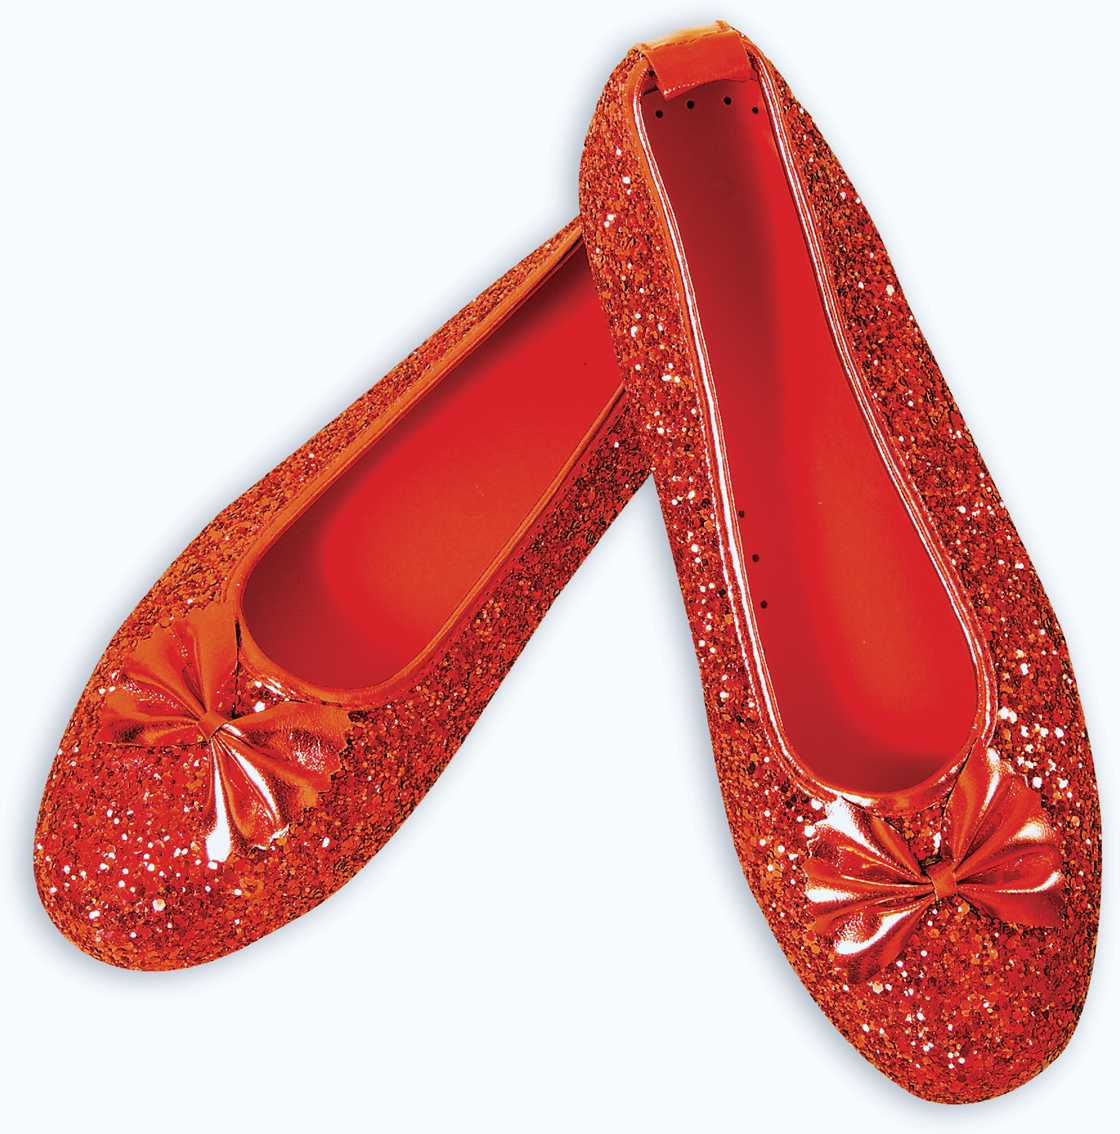 Wizard Of Oz clipart red shoe Shoes Oz Accessories: 7 Factory